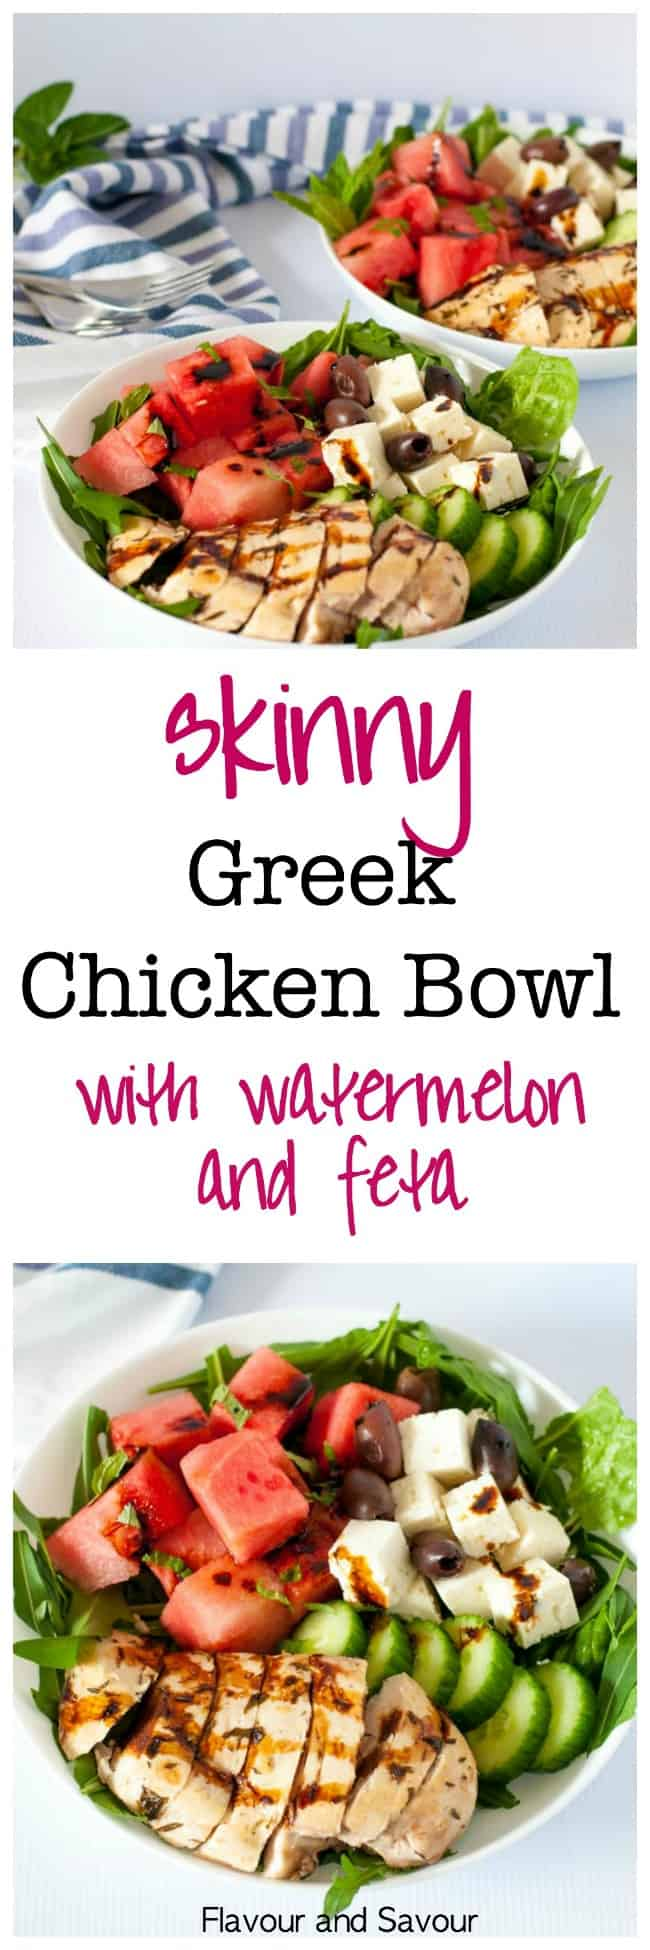 Skinny Greek Chicken Bowl with Watermelon and Feta. An easy, healthy summertime meal in a bowl. Succulent chicken marinated with lemon and herbs, sweet watermelon, feta cheese and Kalamata olives all drizzled with balsamic reduction.